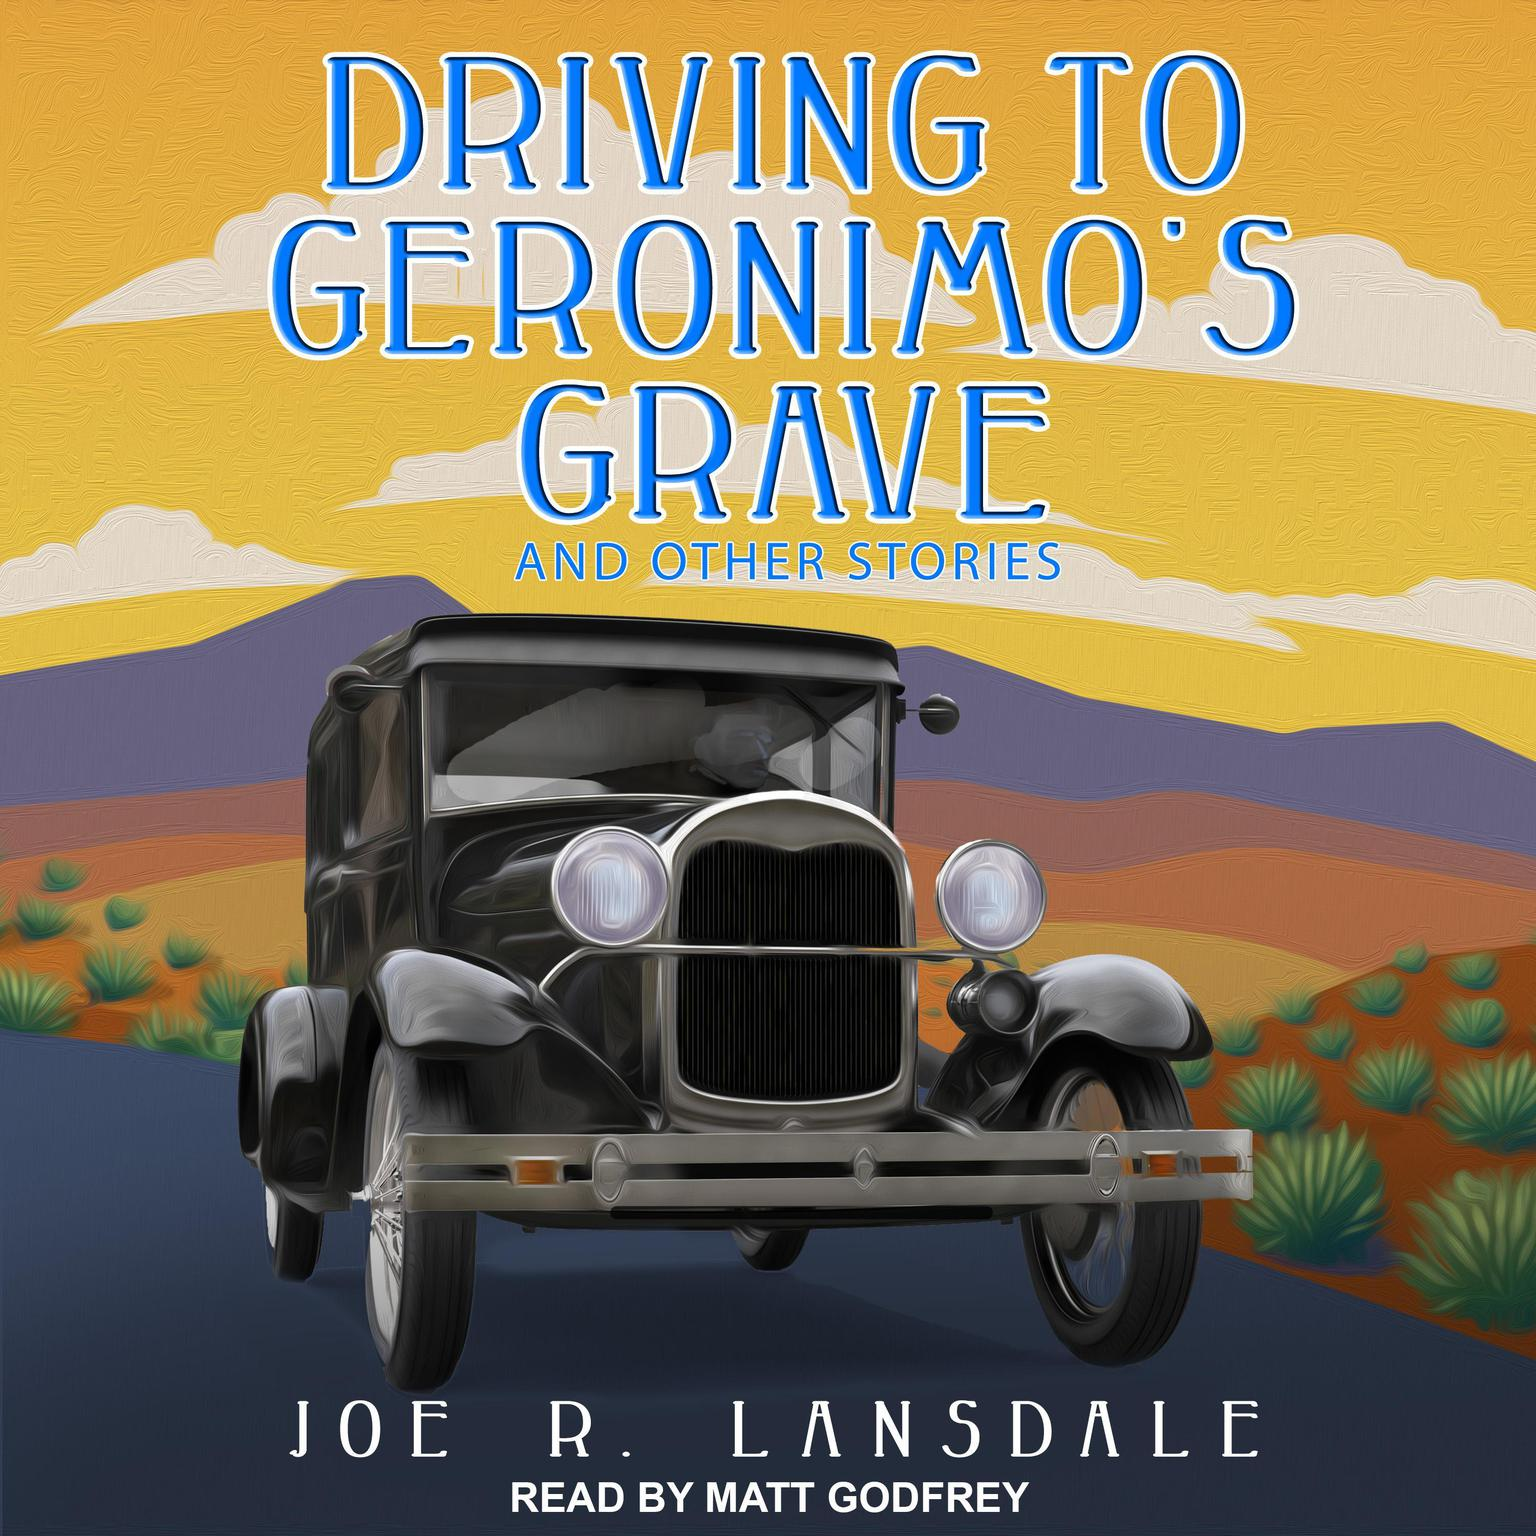 Printable Driving to Geronimo's Grave and Other Stories Audiobook Cover Art